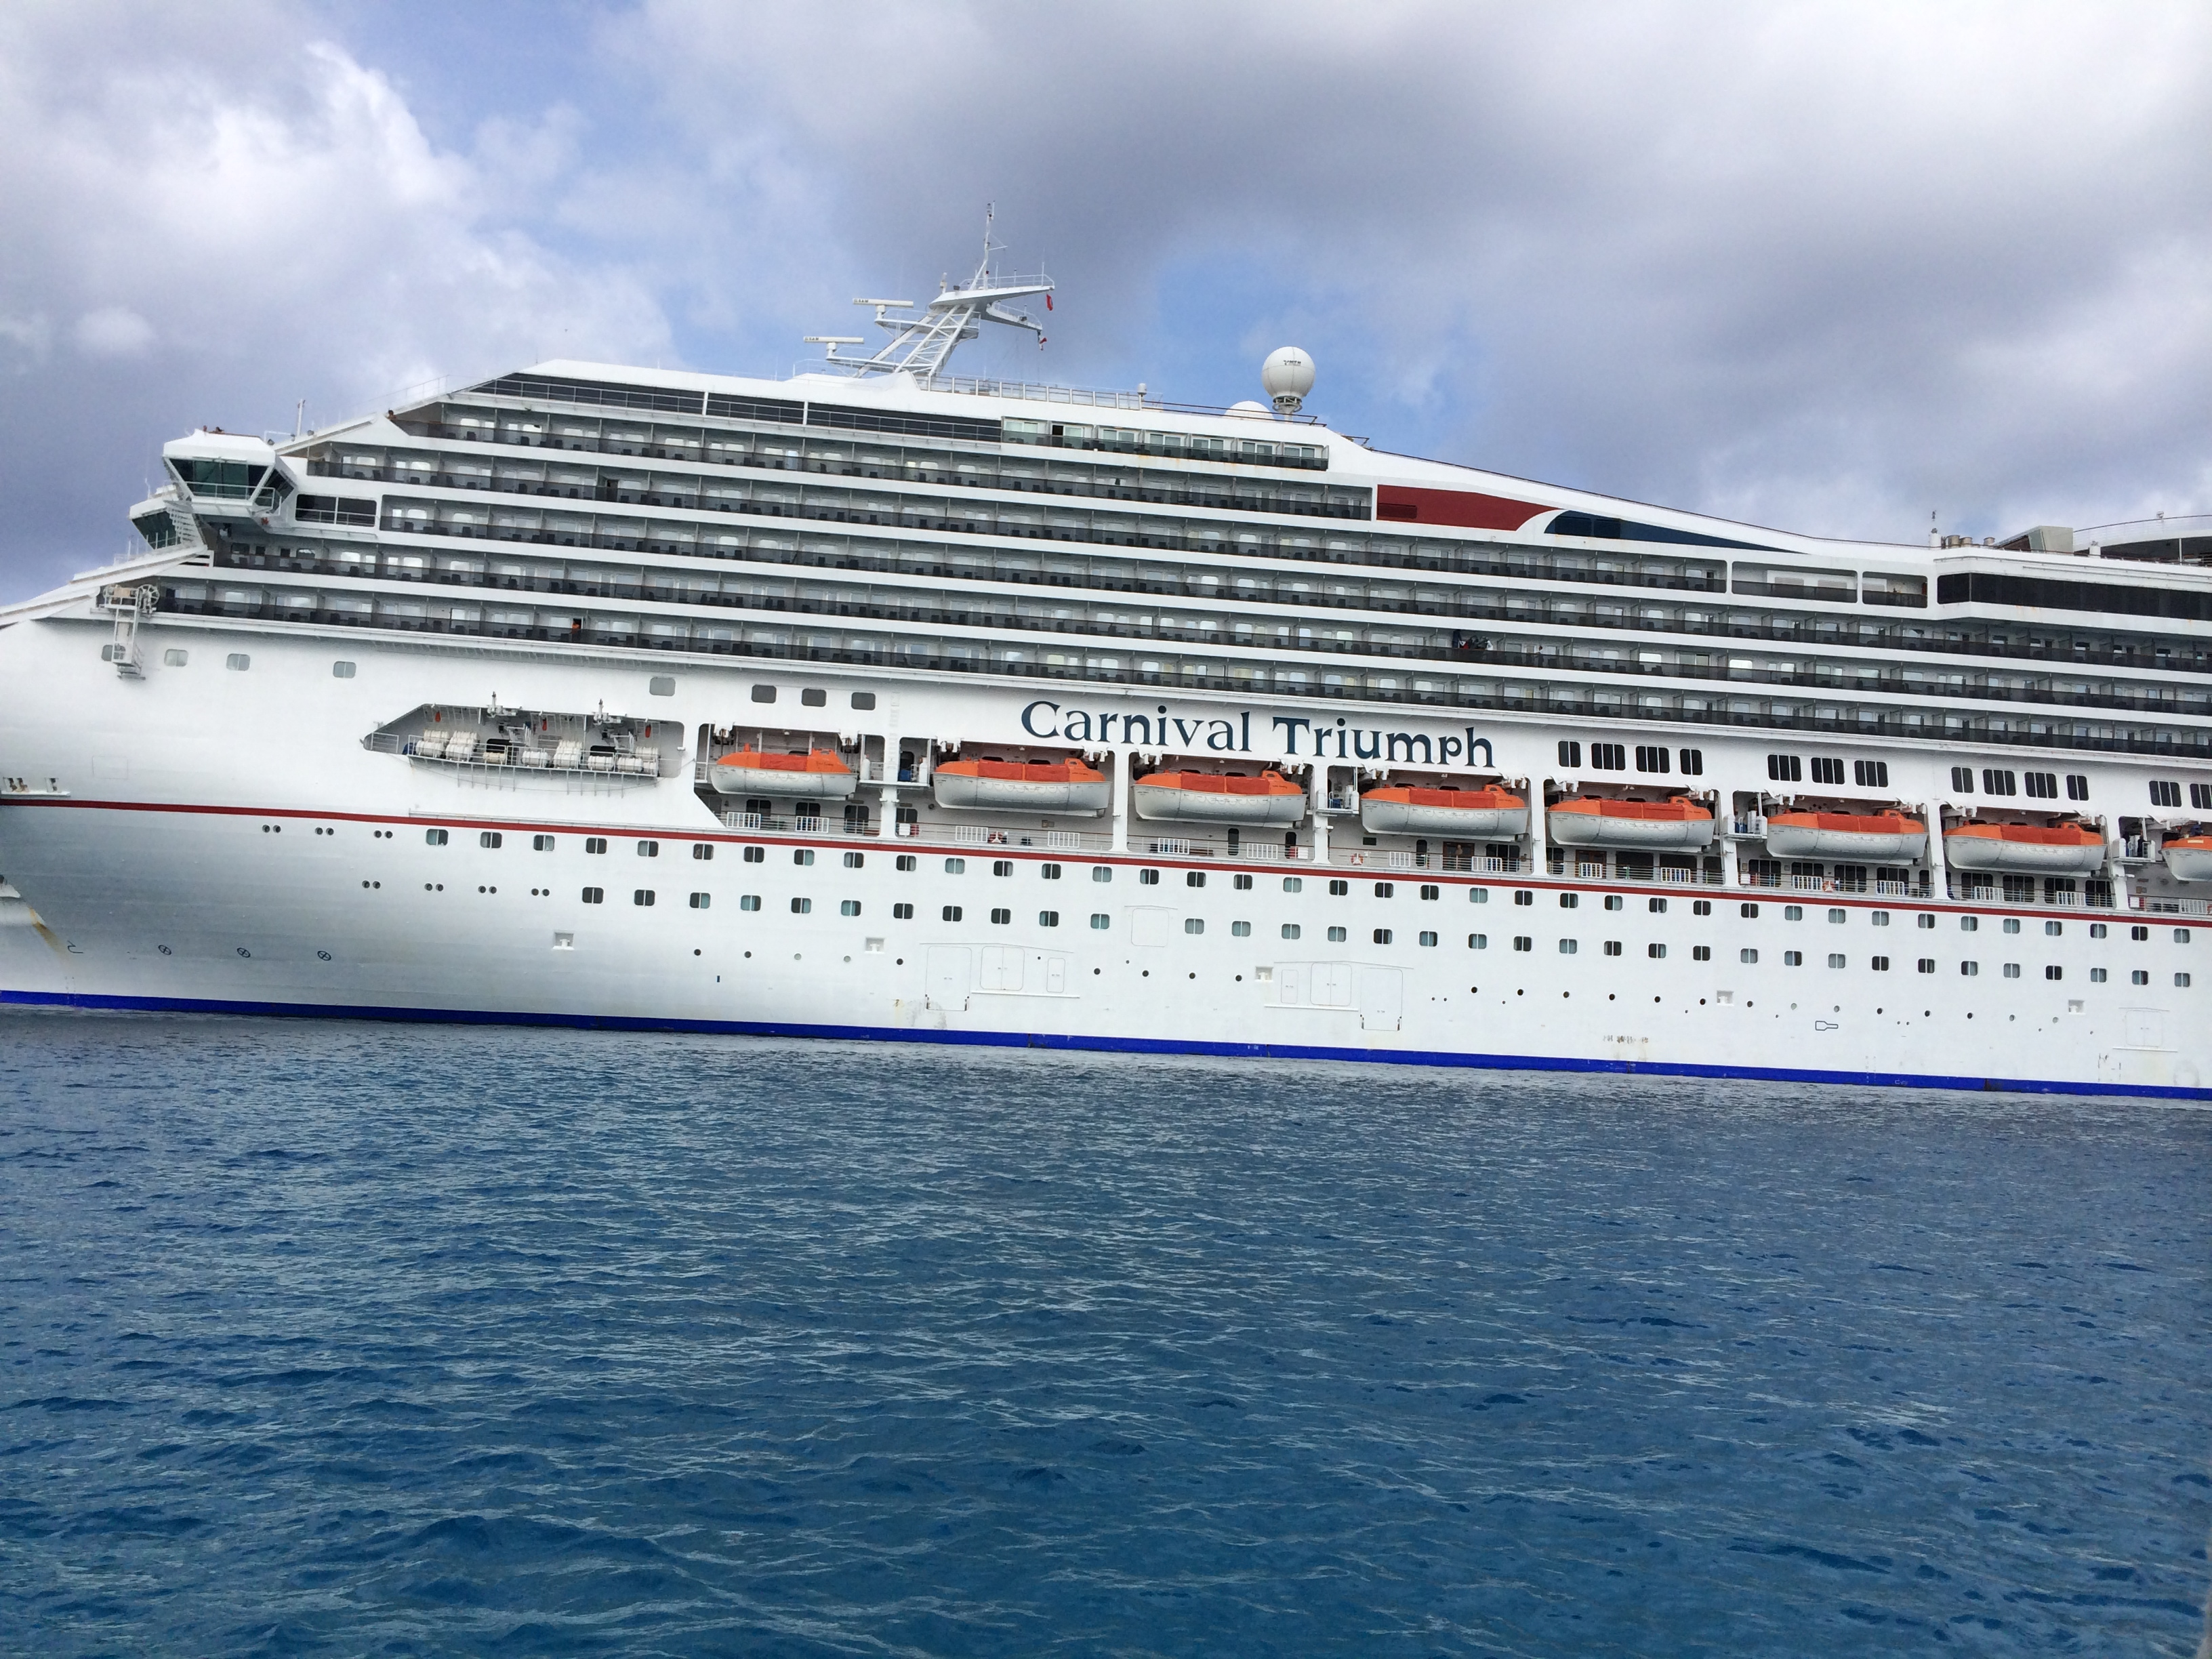 Great Day Cruise On The Carnival Triumph Out Of Galveston Texas - Cruises out of galveston texas